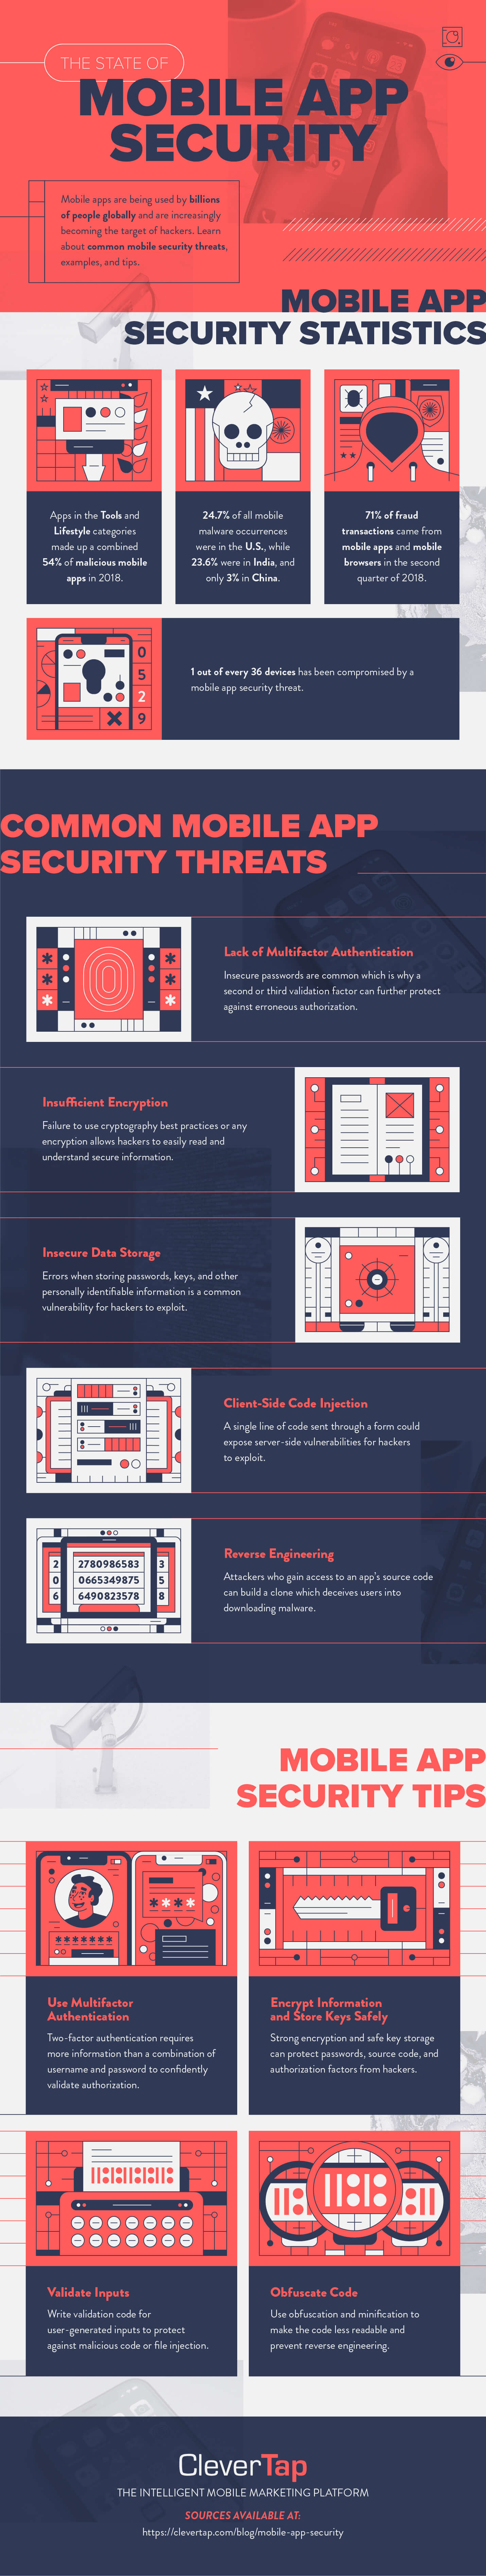 mobile app security best practices full infographic